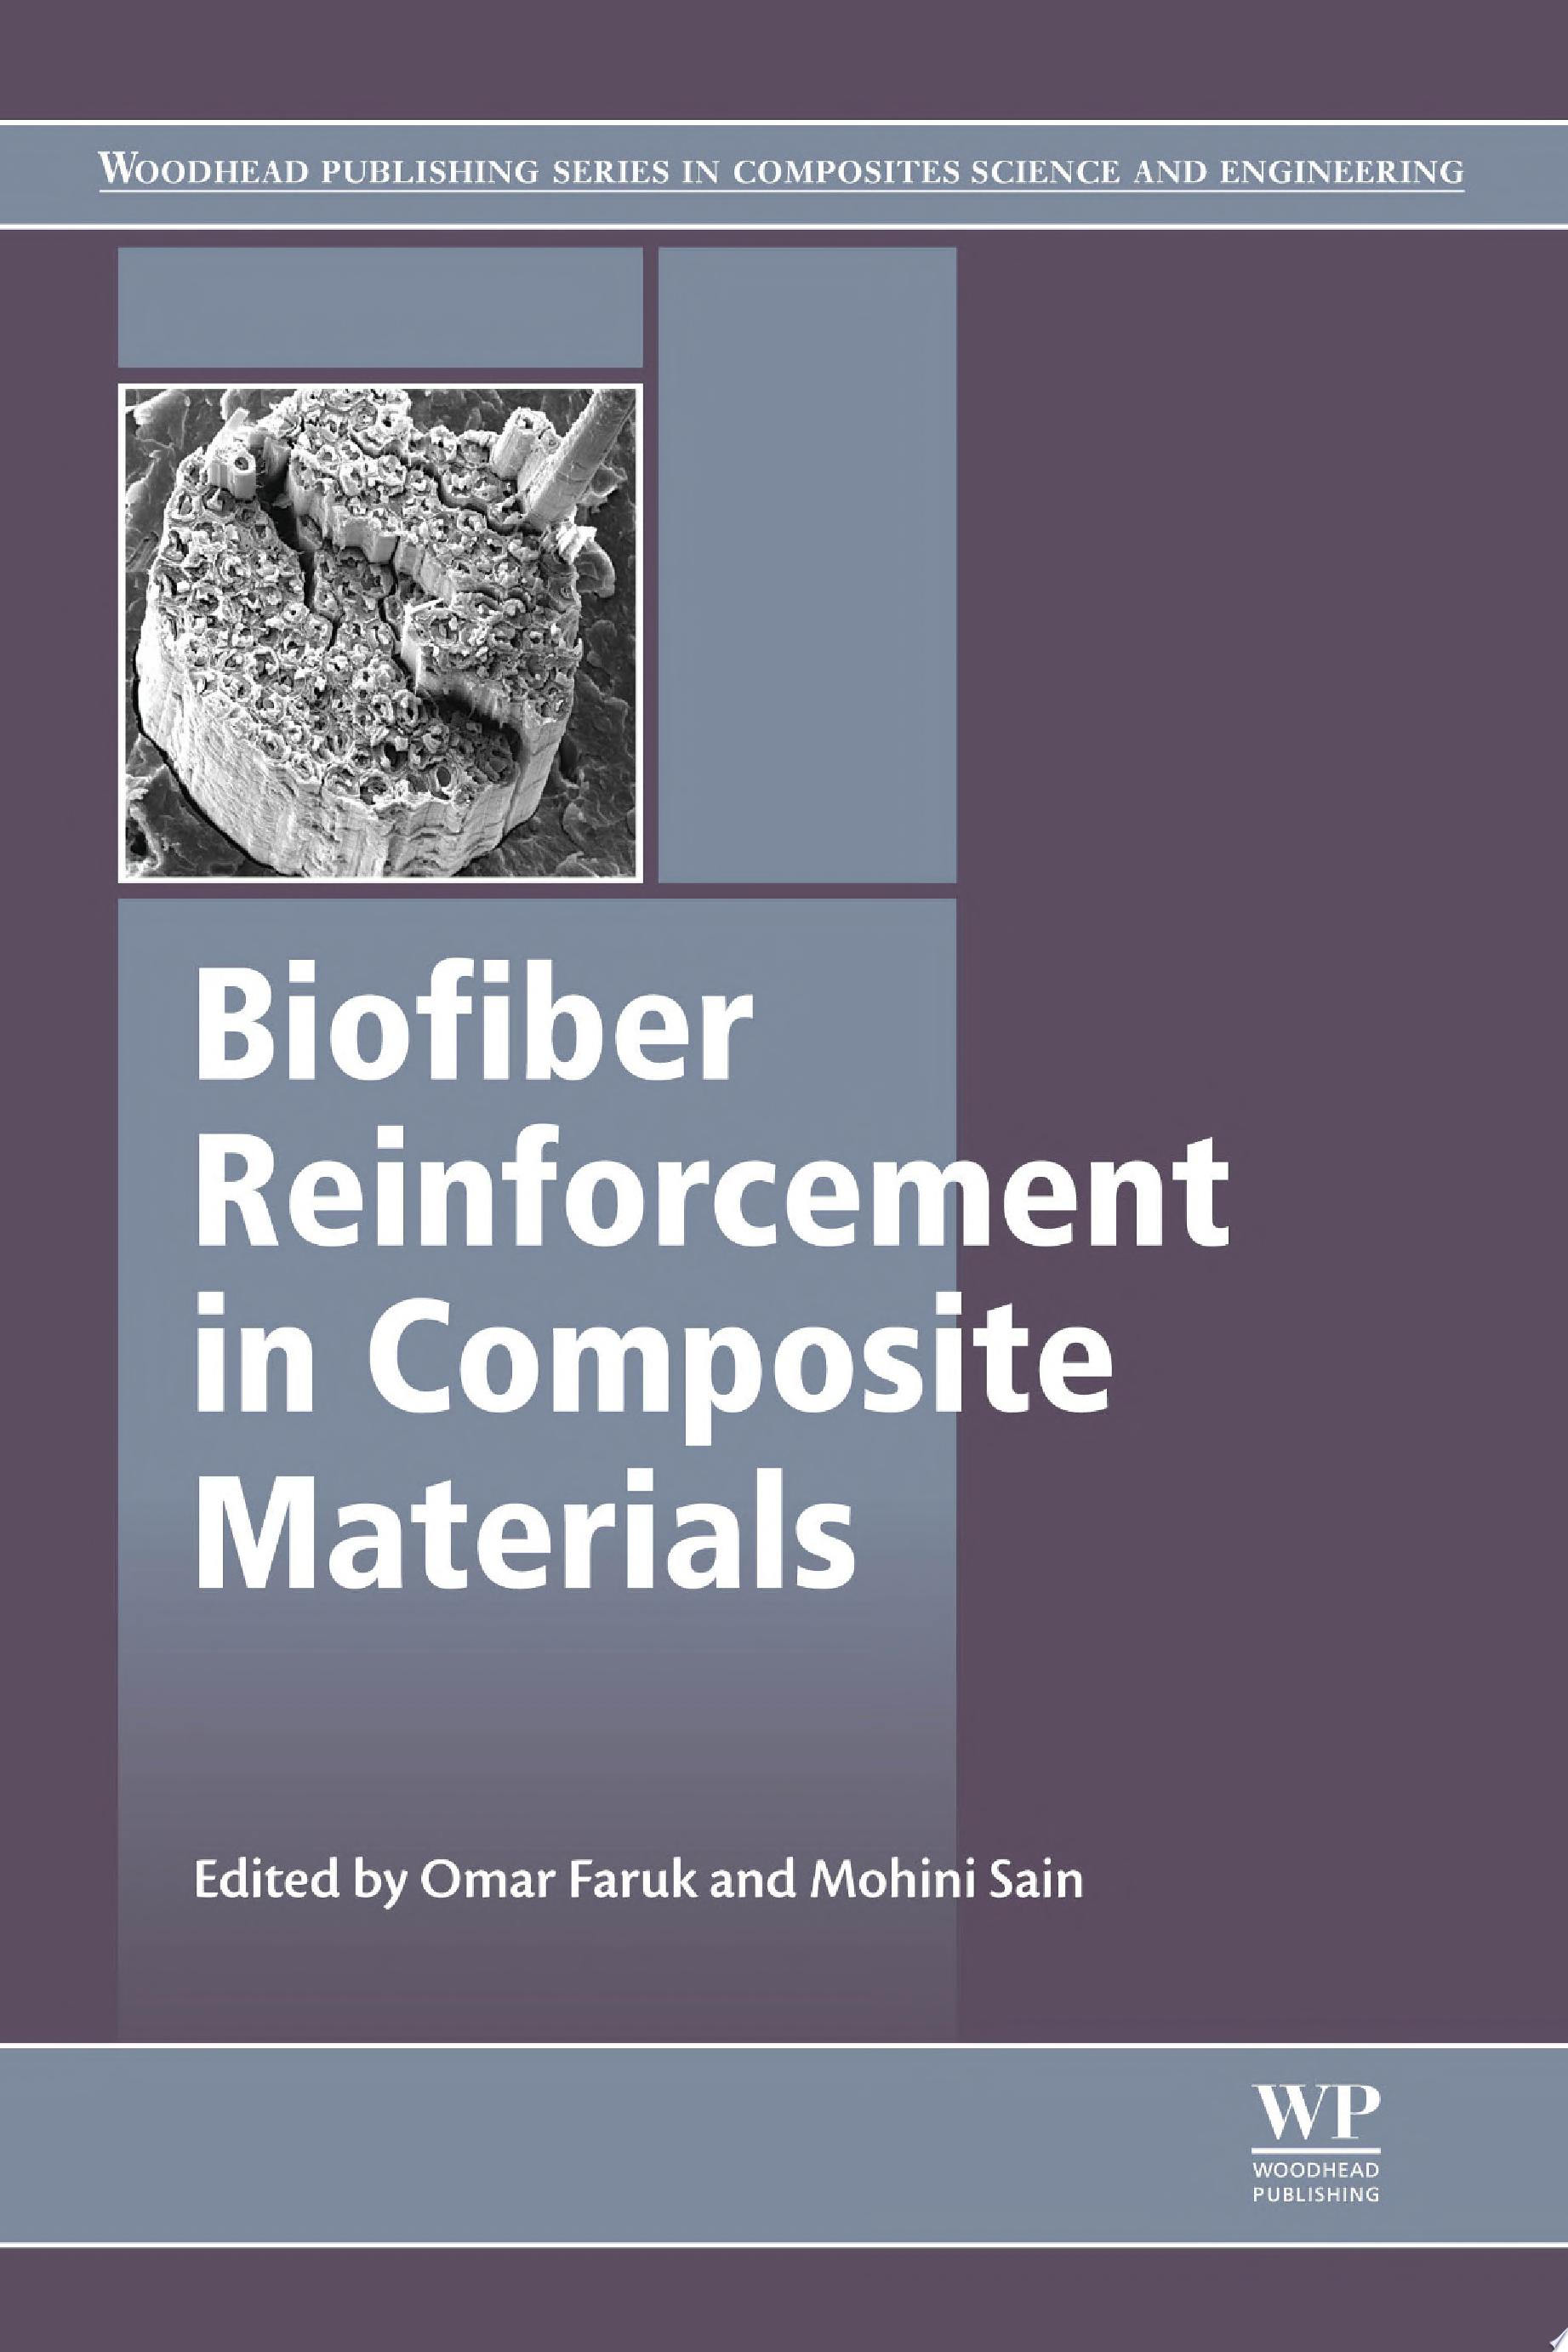 Biofiber Reinforcements in Composite Materials